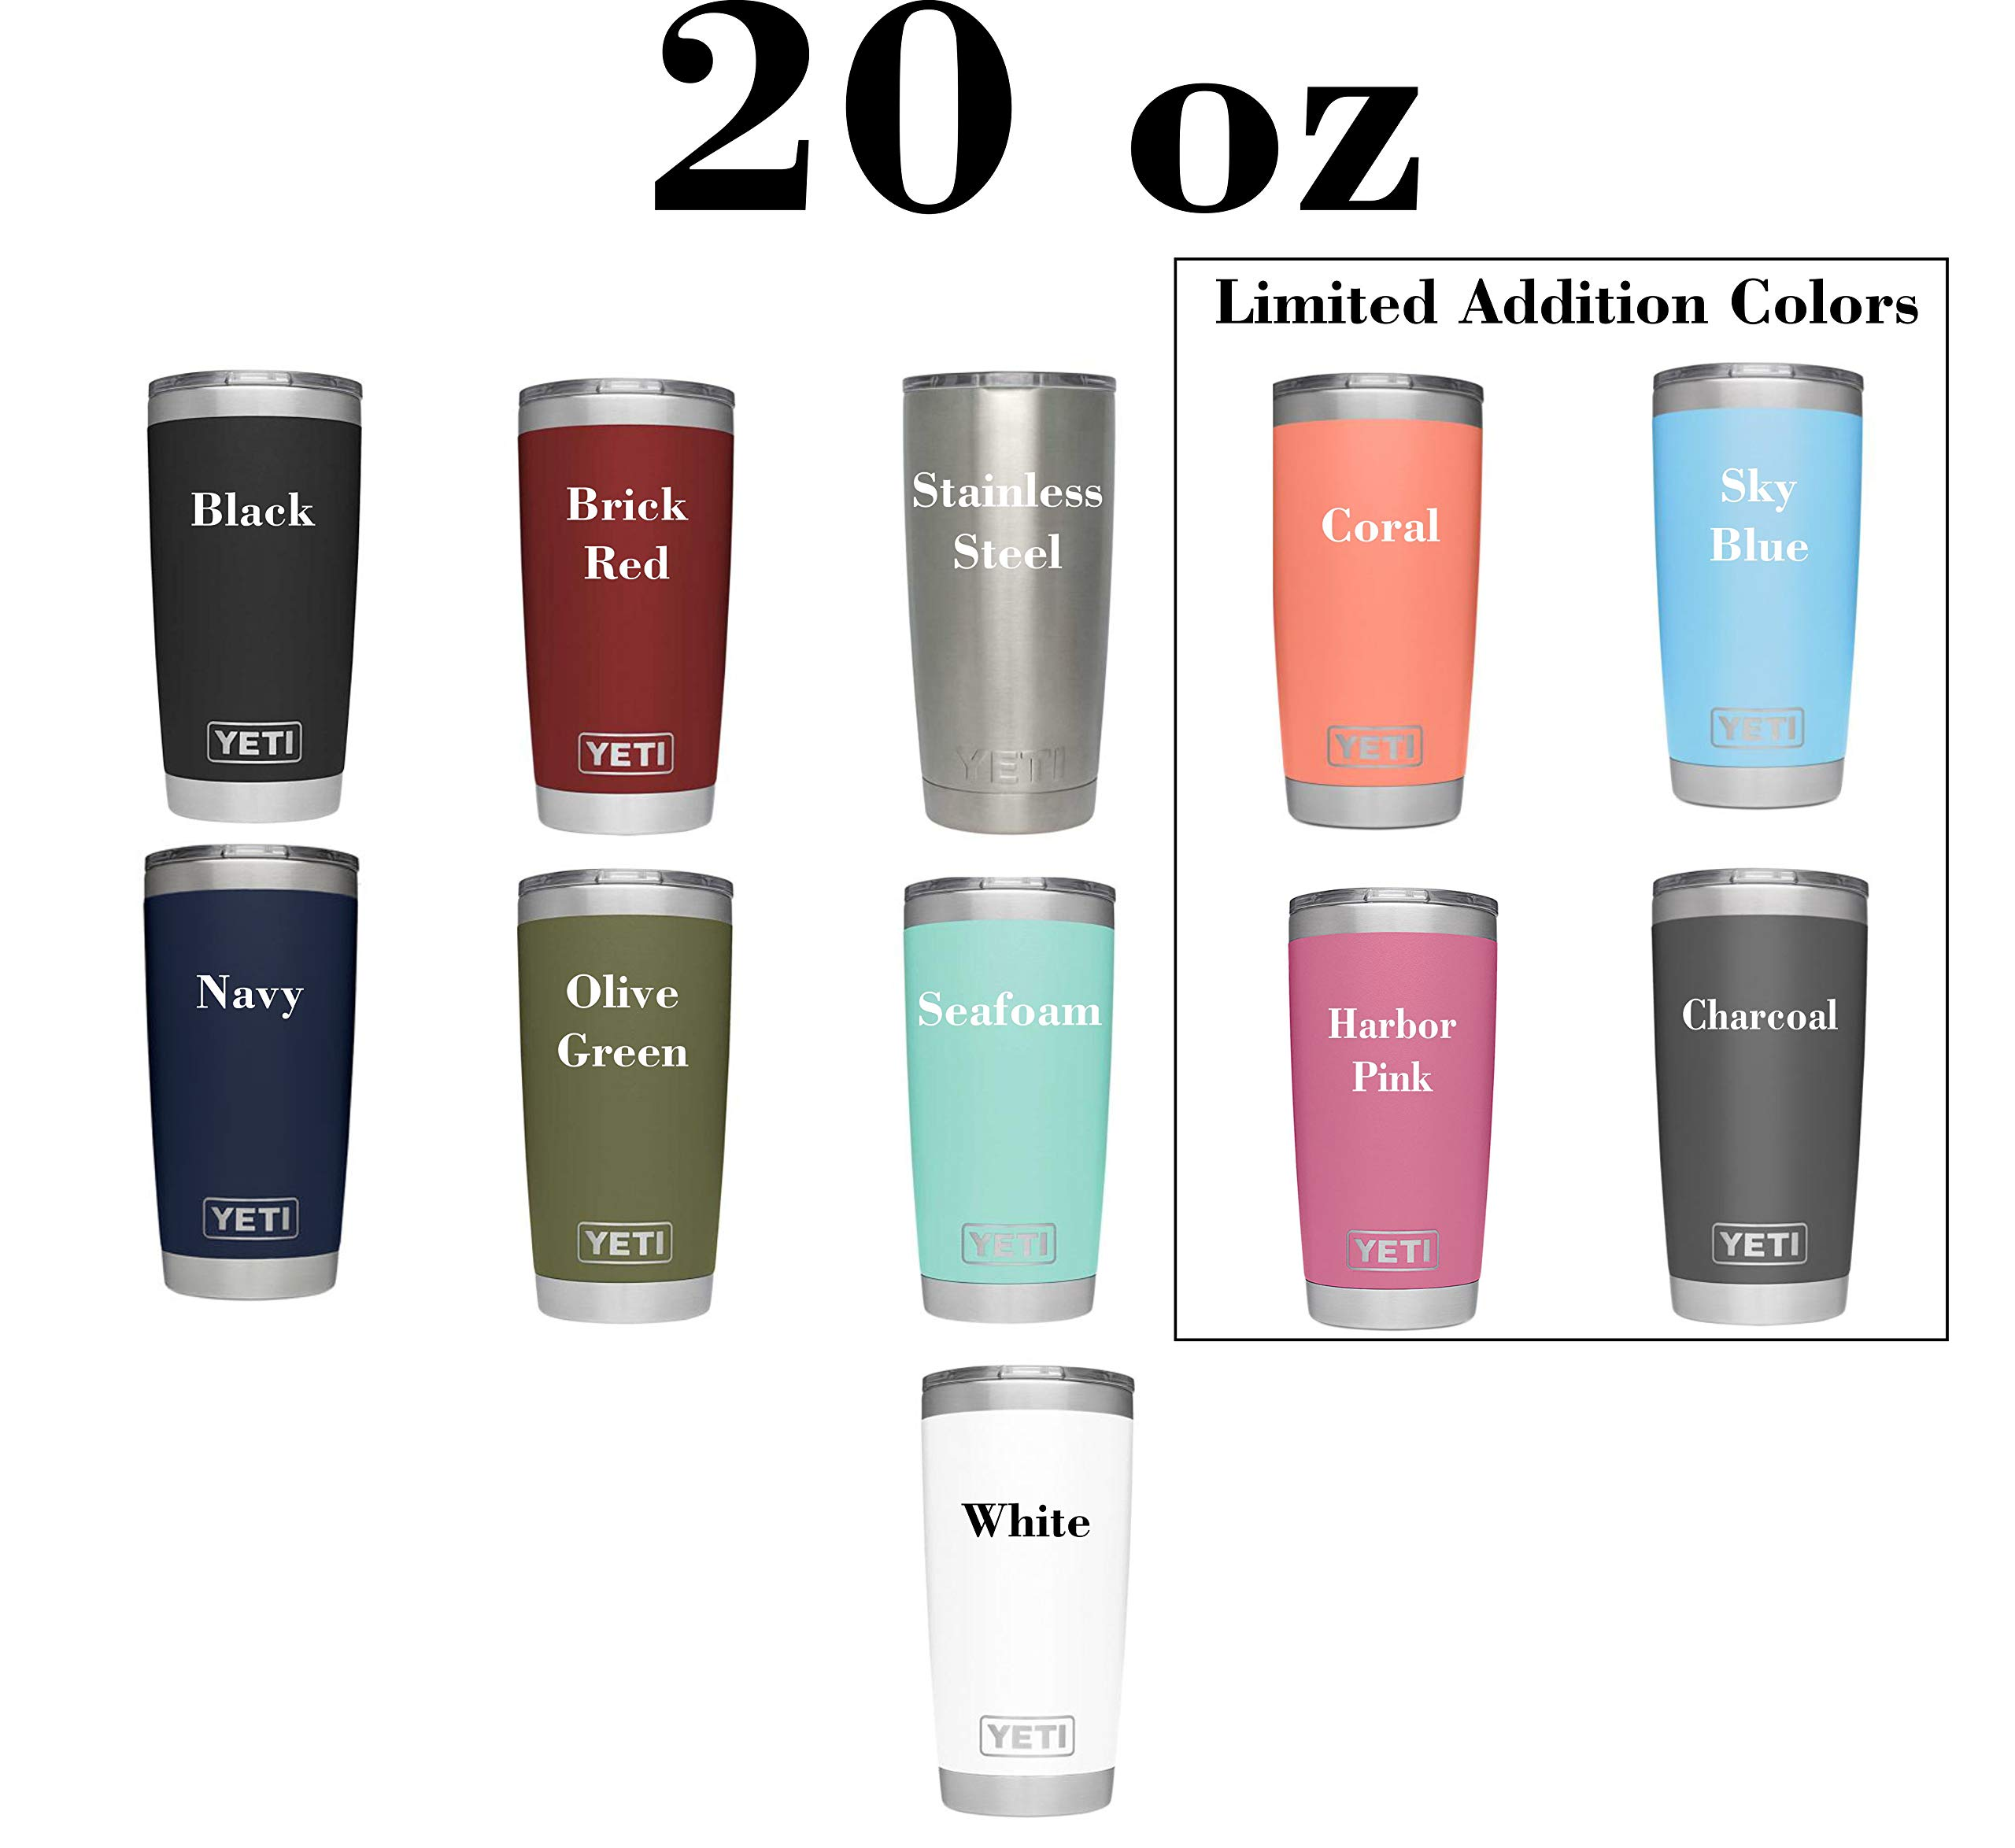 New Pink Yeti Limited Addition Personalized Yeti Tumbler Engraved Yeti Rambler 20 Oz Yeti 30 Oz Yeti Personalized Yeti Yeti Gift Laser